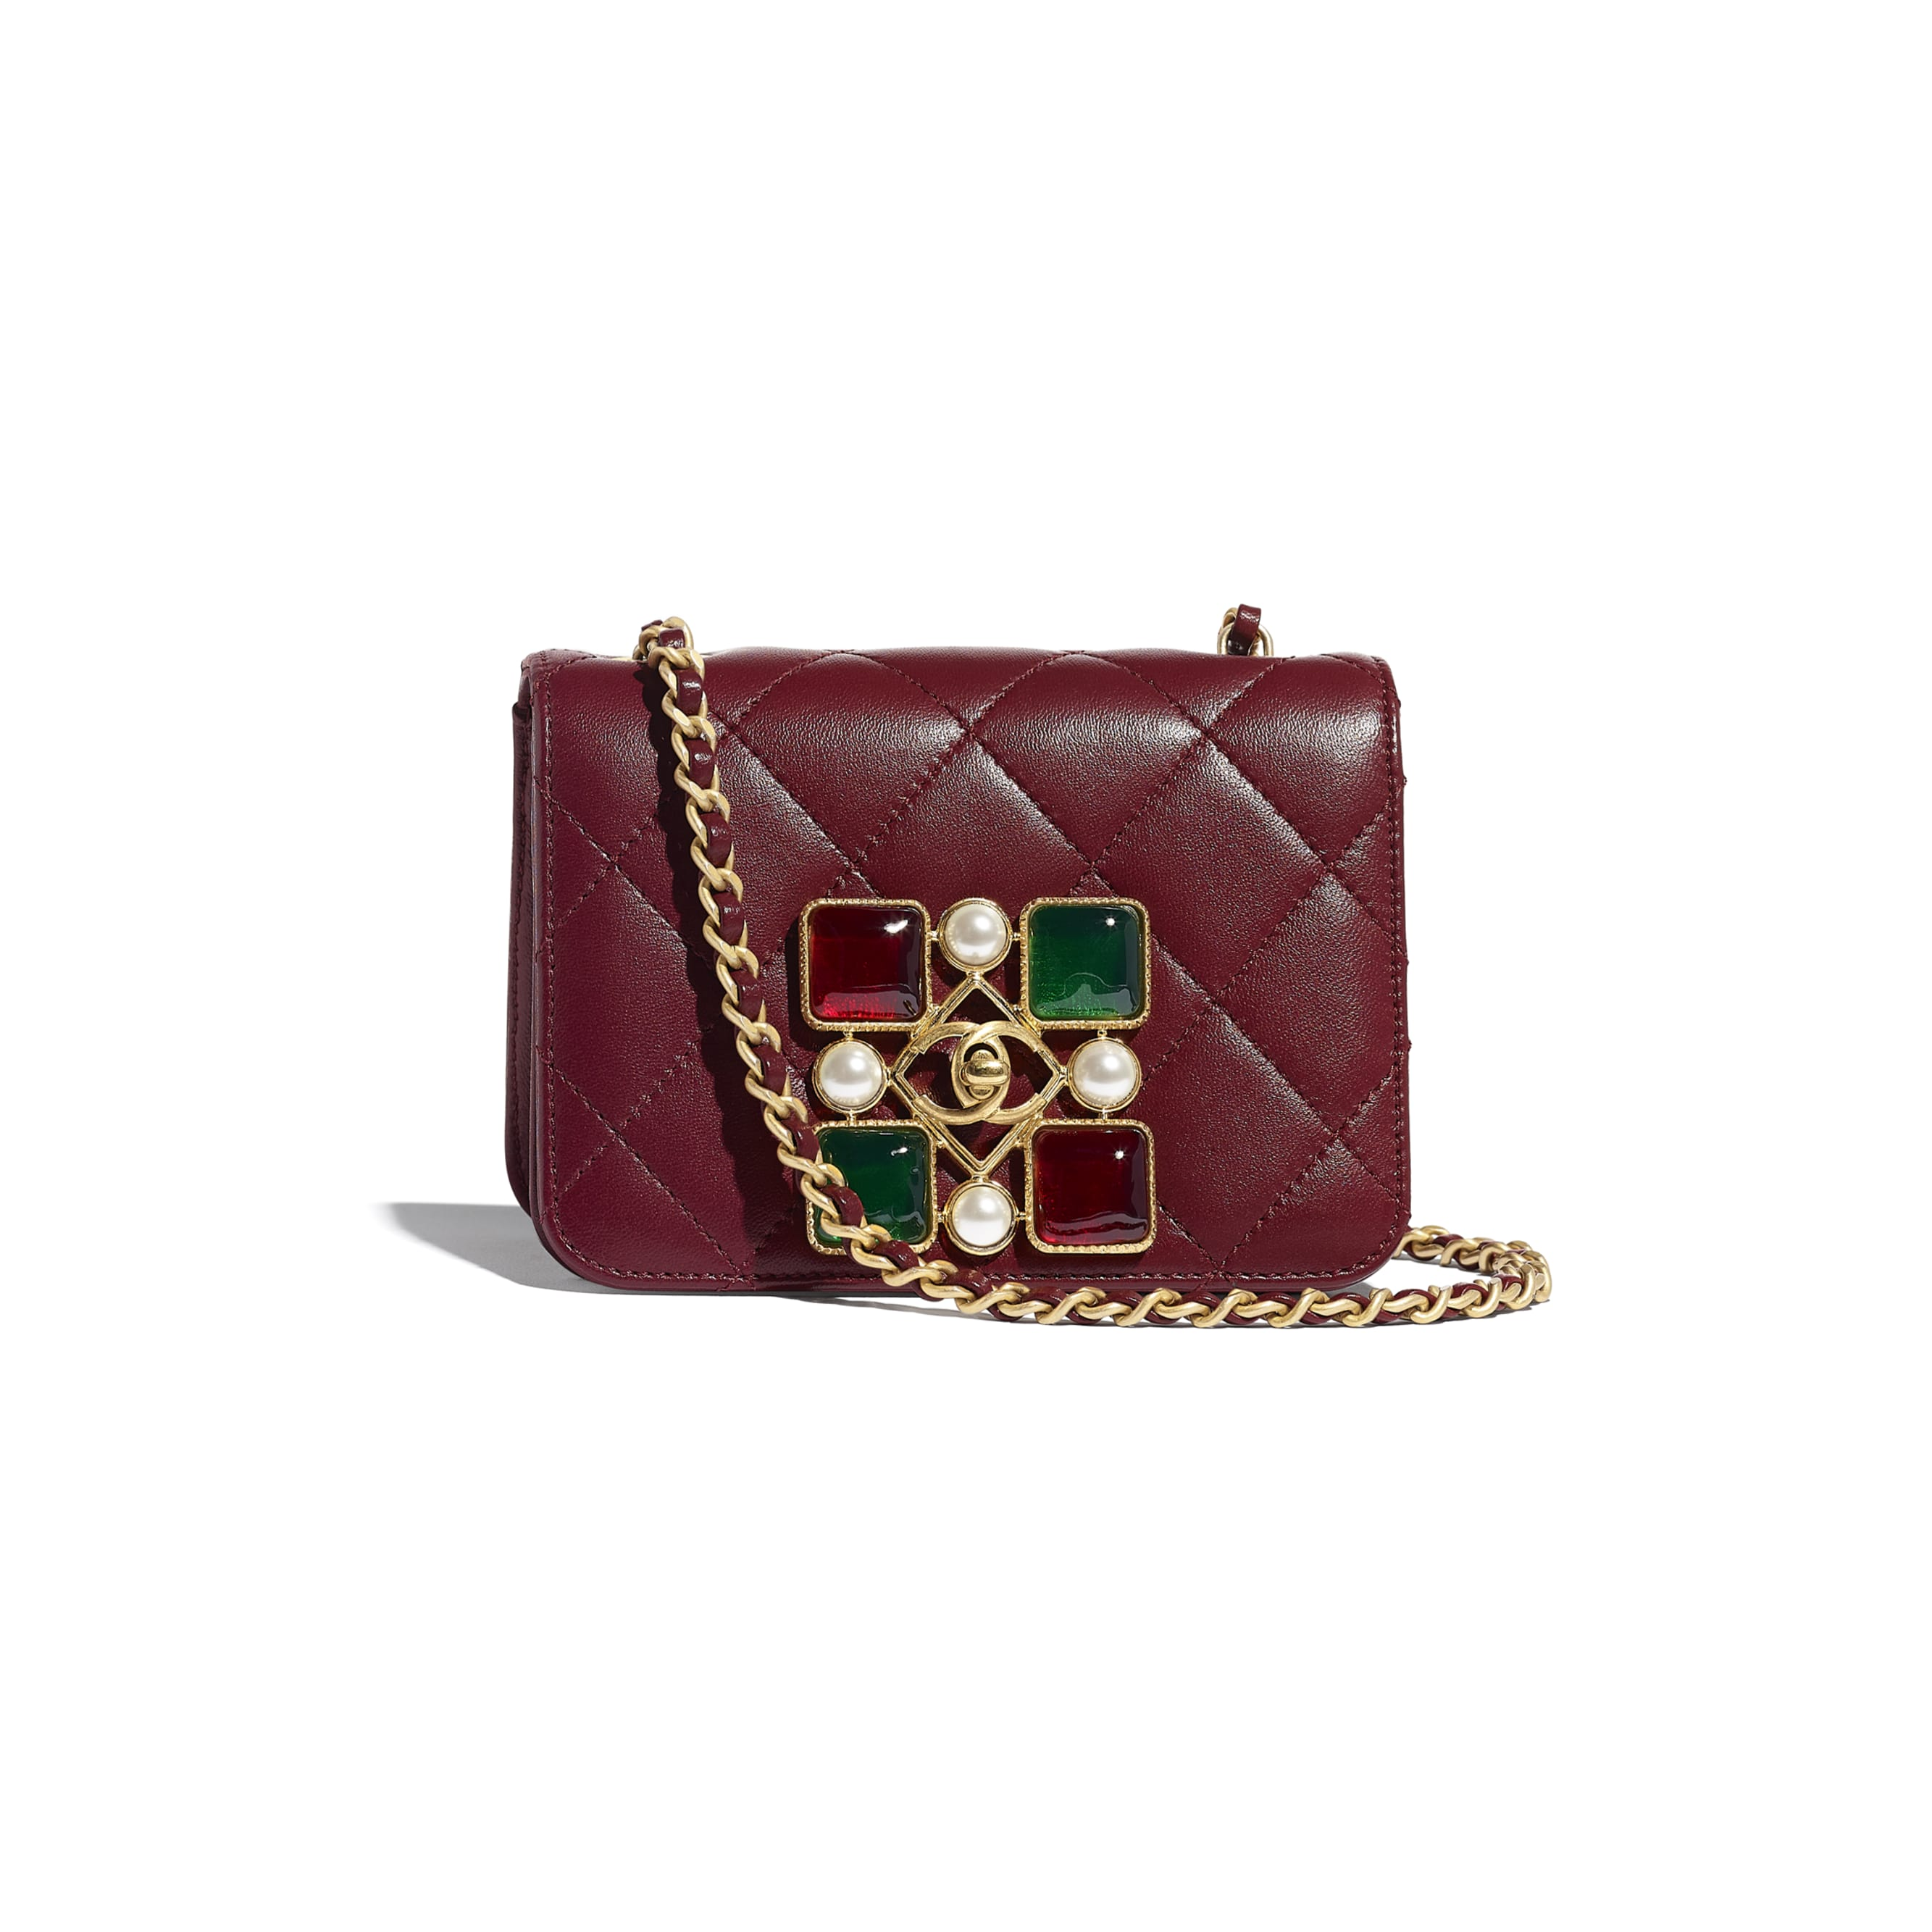 Small Flap Bag - Burgundy - Calfskin, Crystal Pearls, Resin & Gold-Tone Metal - CHANEL - Default view - see standard sized version